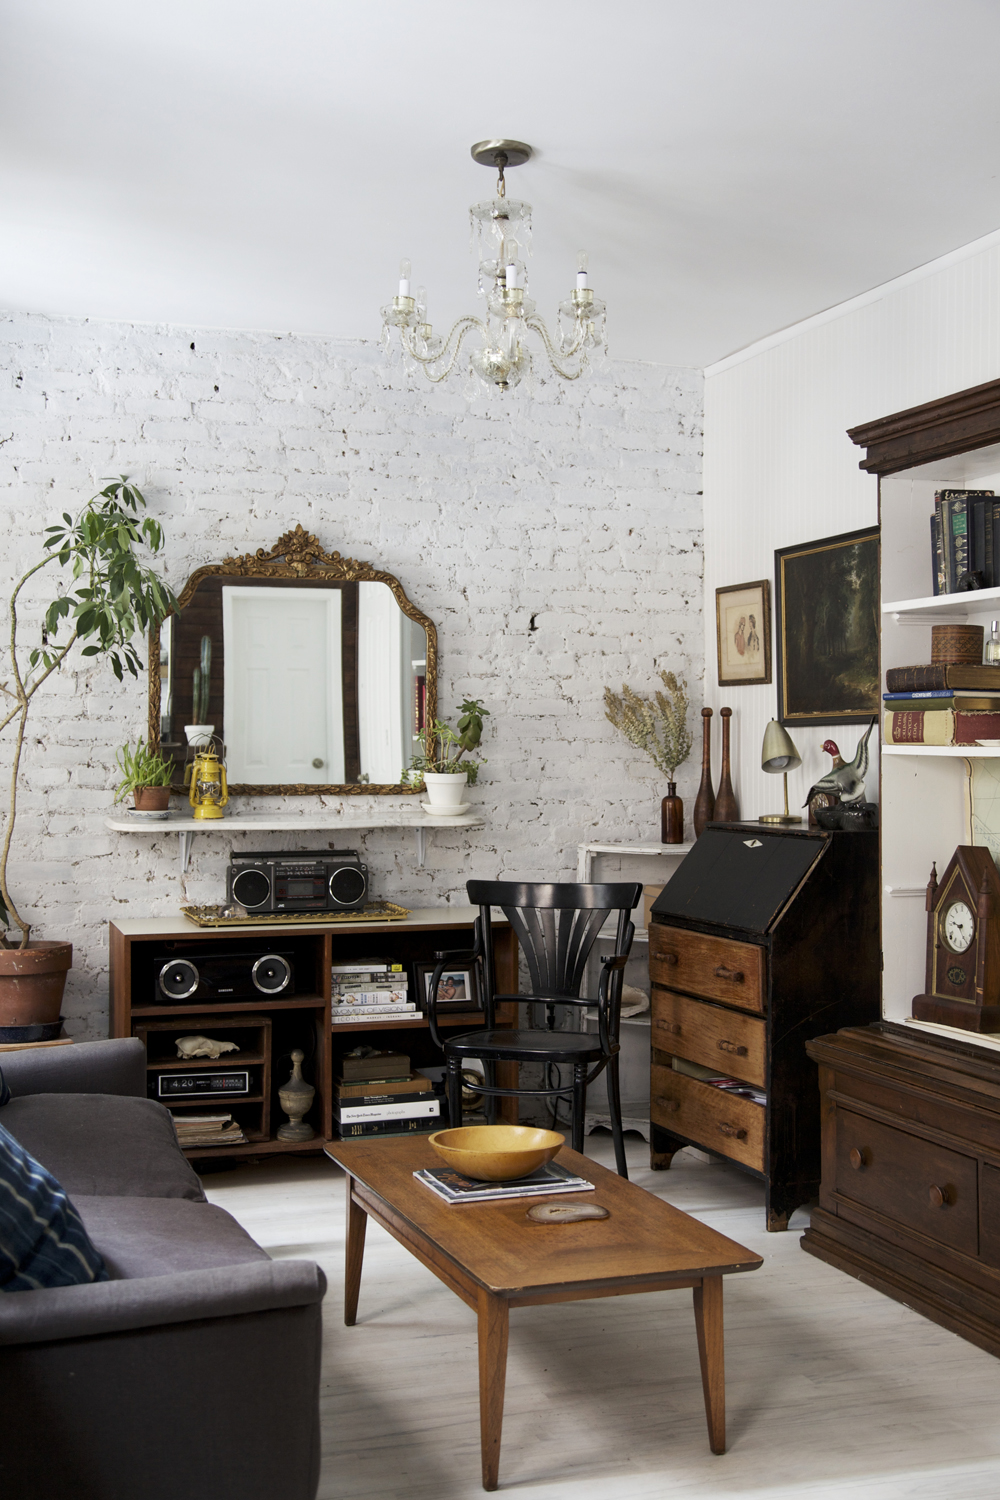 Anthony d 39 argenzio 39 s east village home in the heart of new - Decoracion industrial vintage ...